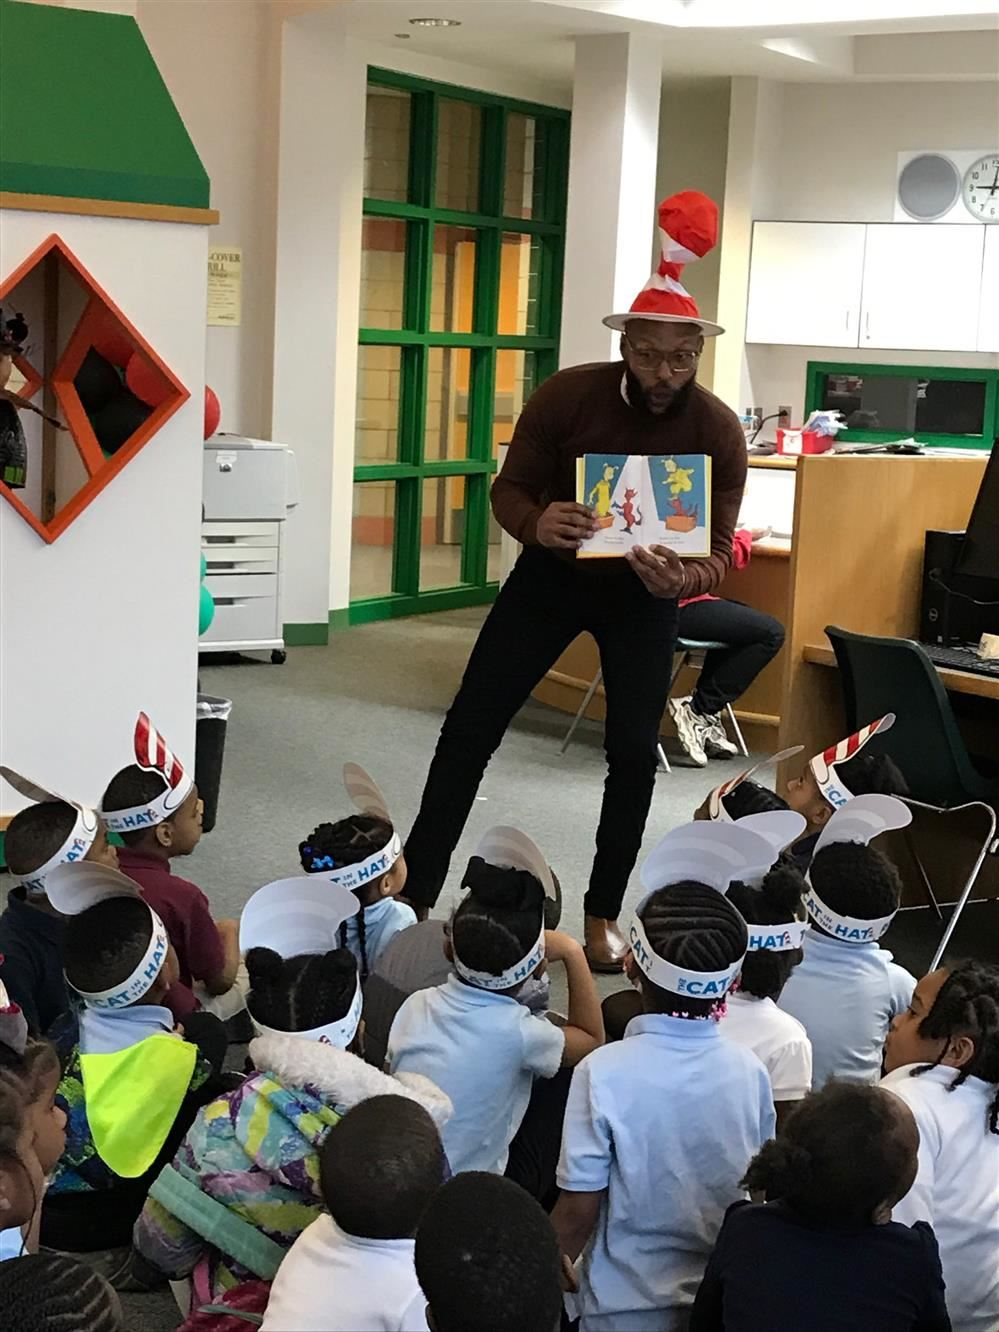 Principal Pitt show a group of Kindergarten students a picture while reading a Dr. Seuss story.